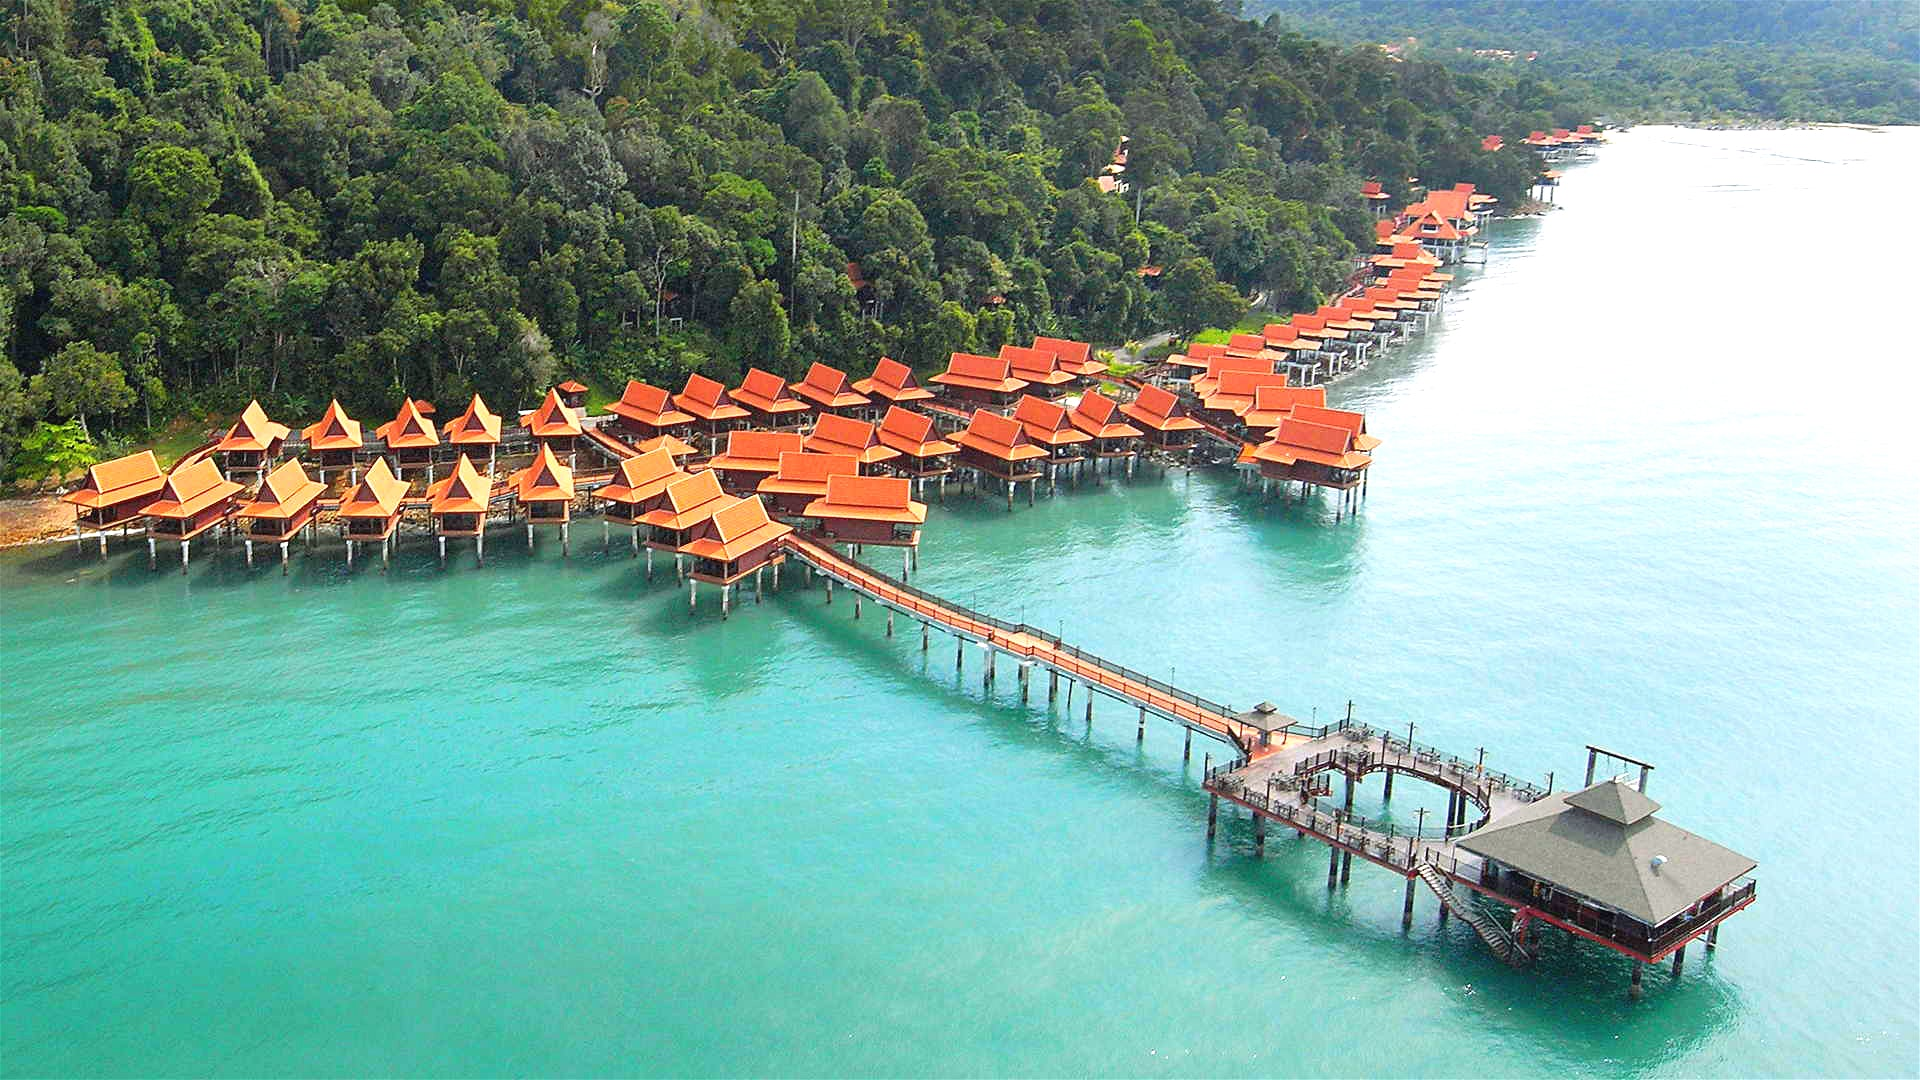 3Days 2Nights CHILLAX at Berjaya Langkawi